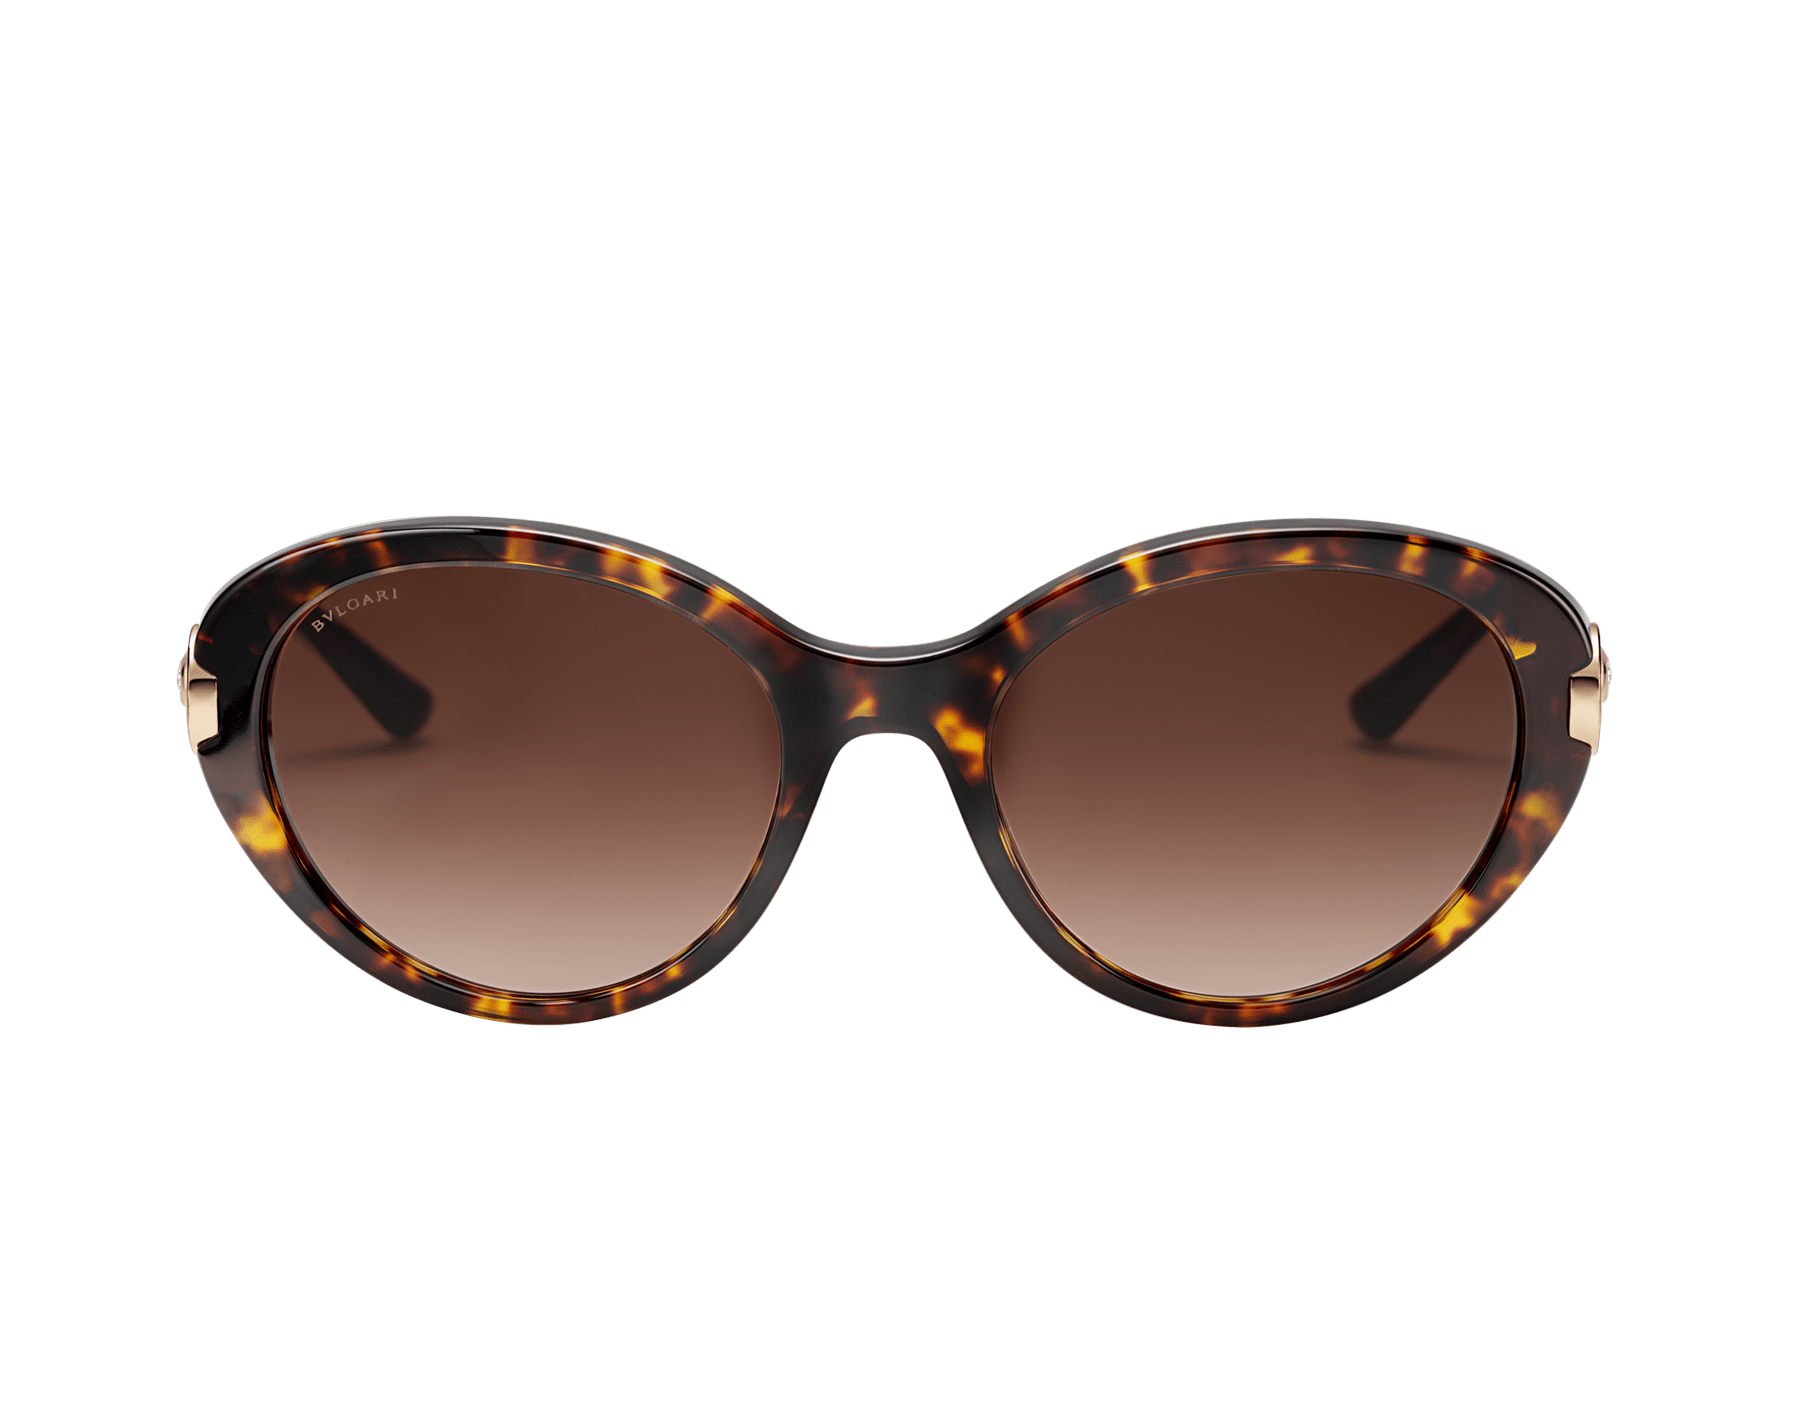 BVLGARI BVLGARI oval acetate sunglasses with metal décor and crystals. 903798 image 2